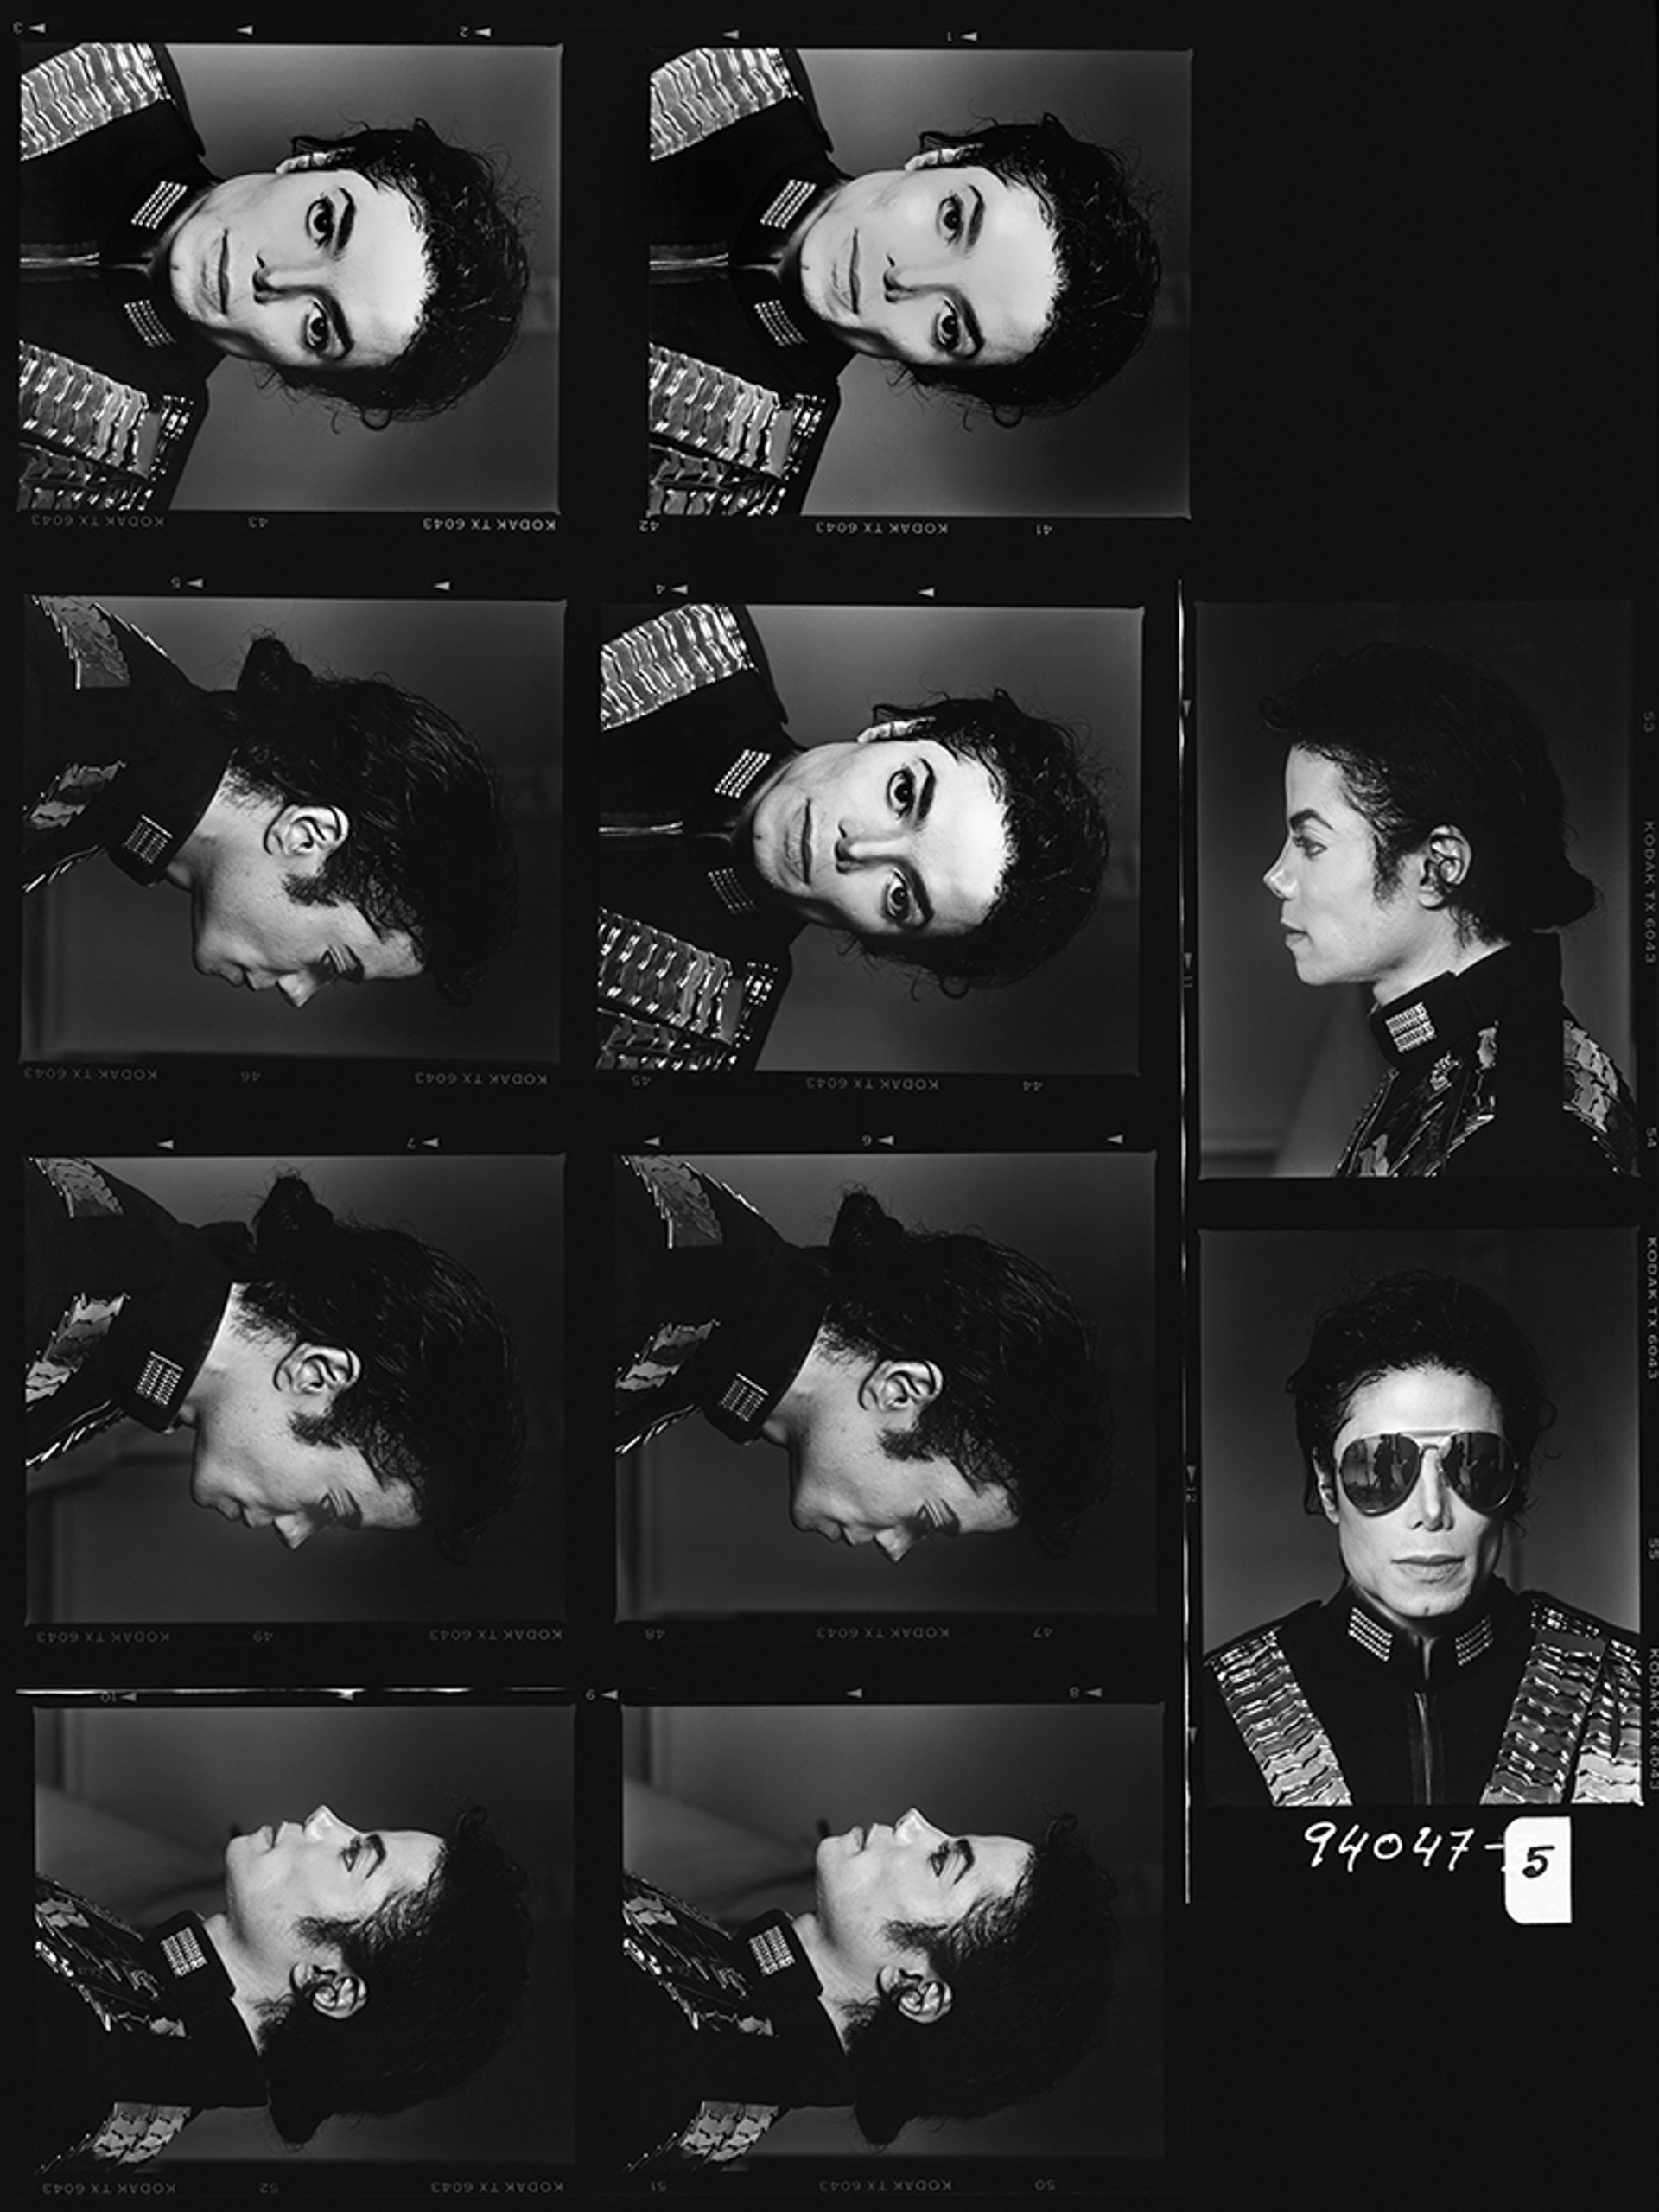 94047 Michael Jackson Contact Sheet 5 Faces BW by Timothy White